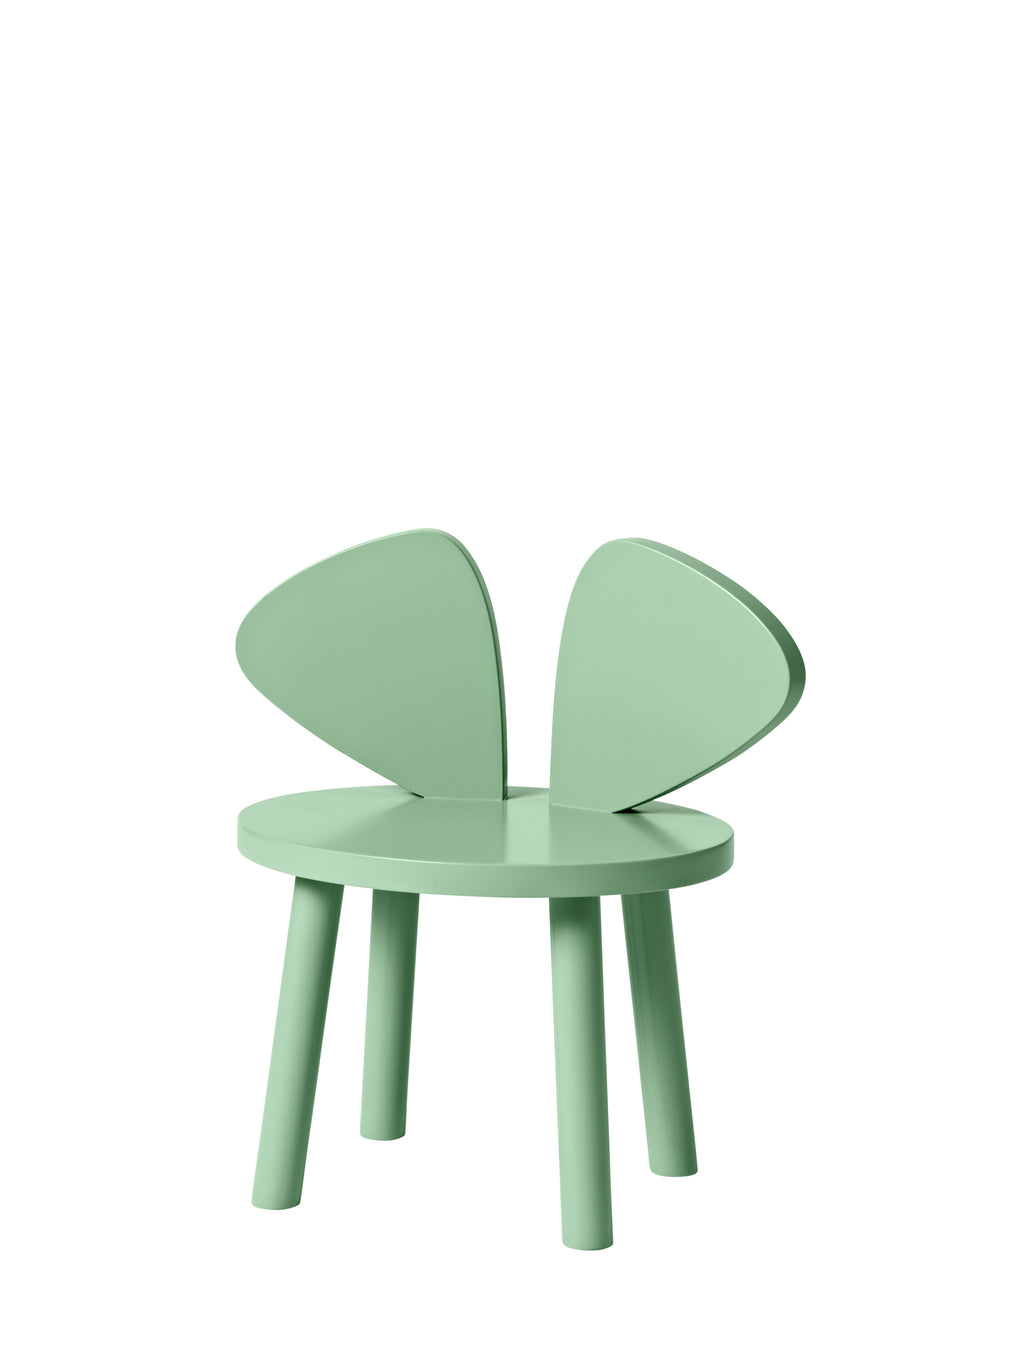 MOUSE CHAIR (2-5 YEARS) // MINT